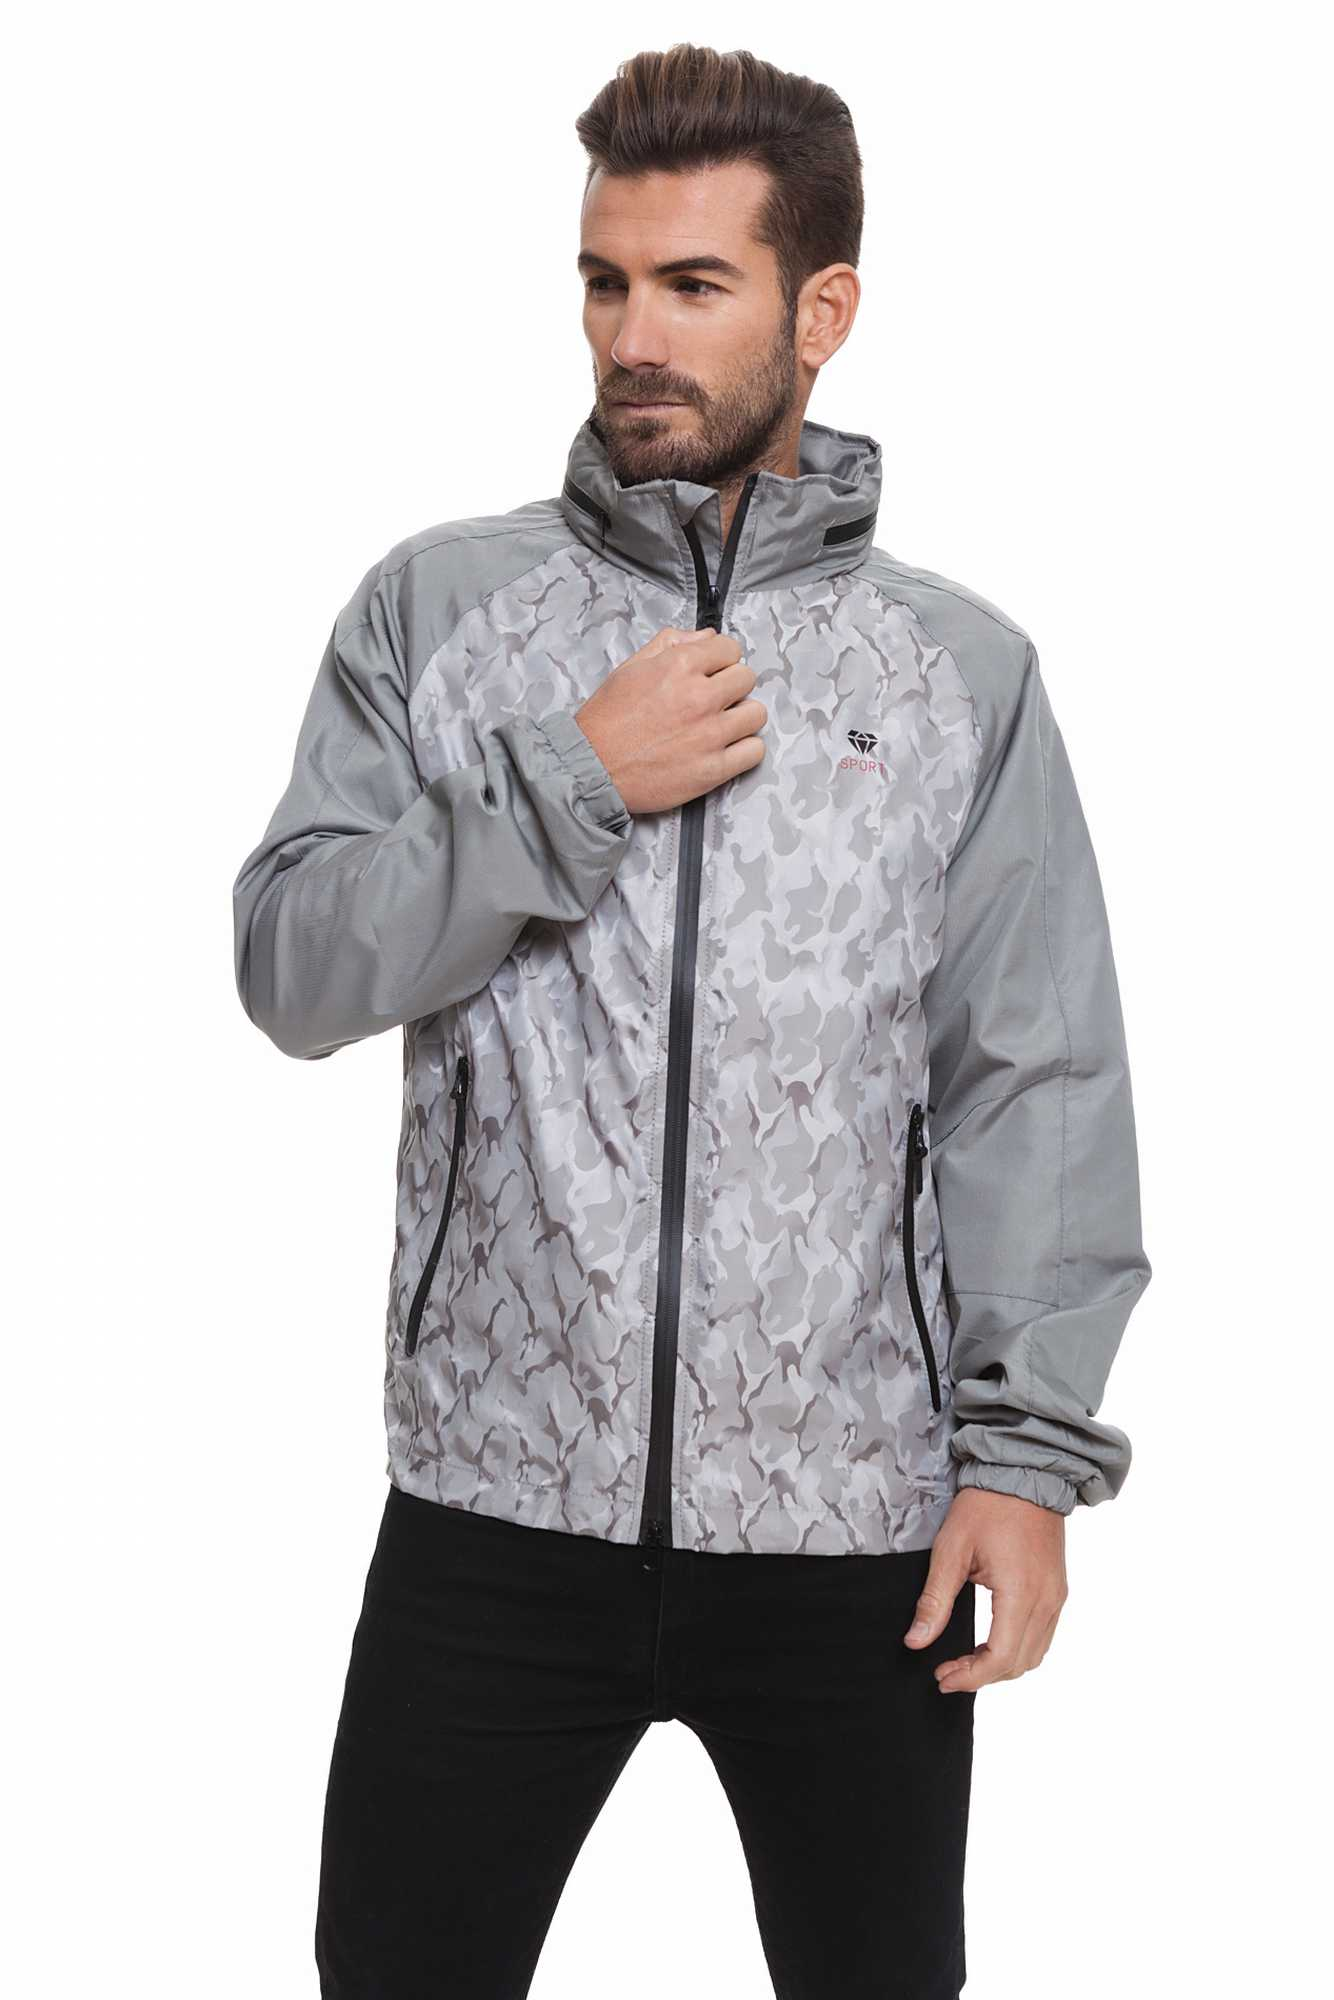 Born Rich Jacket For Men FABREGAS With Hoodie And Zipper Length Color Alloy Causal BR2K111097AA2BRC-2BR2K111097AA2BRC-3